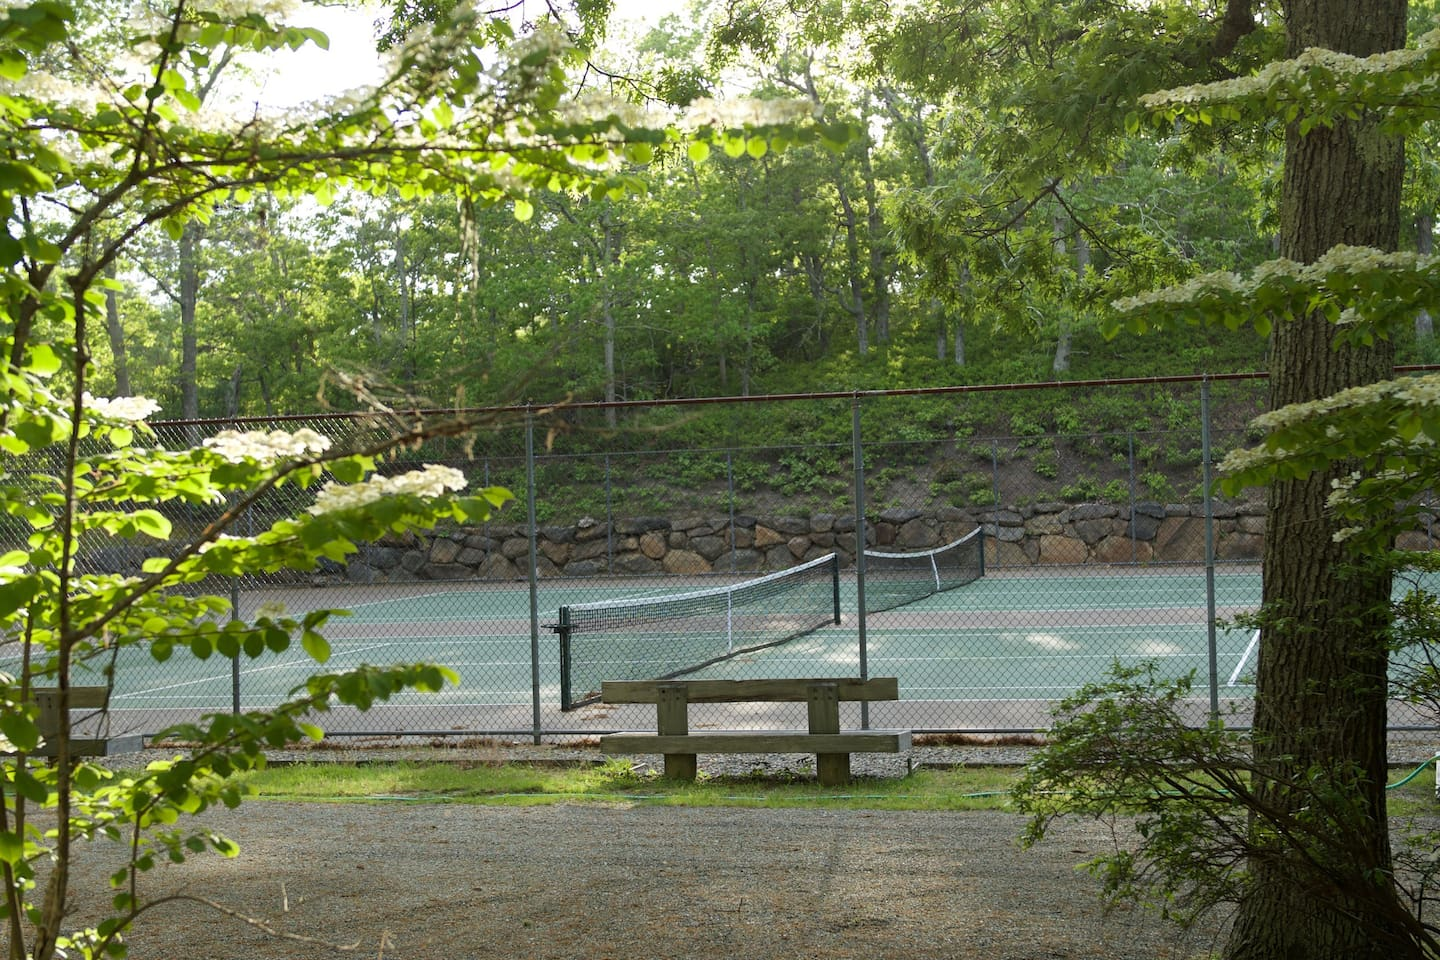 Development tennis courts